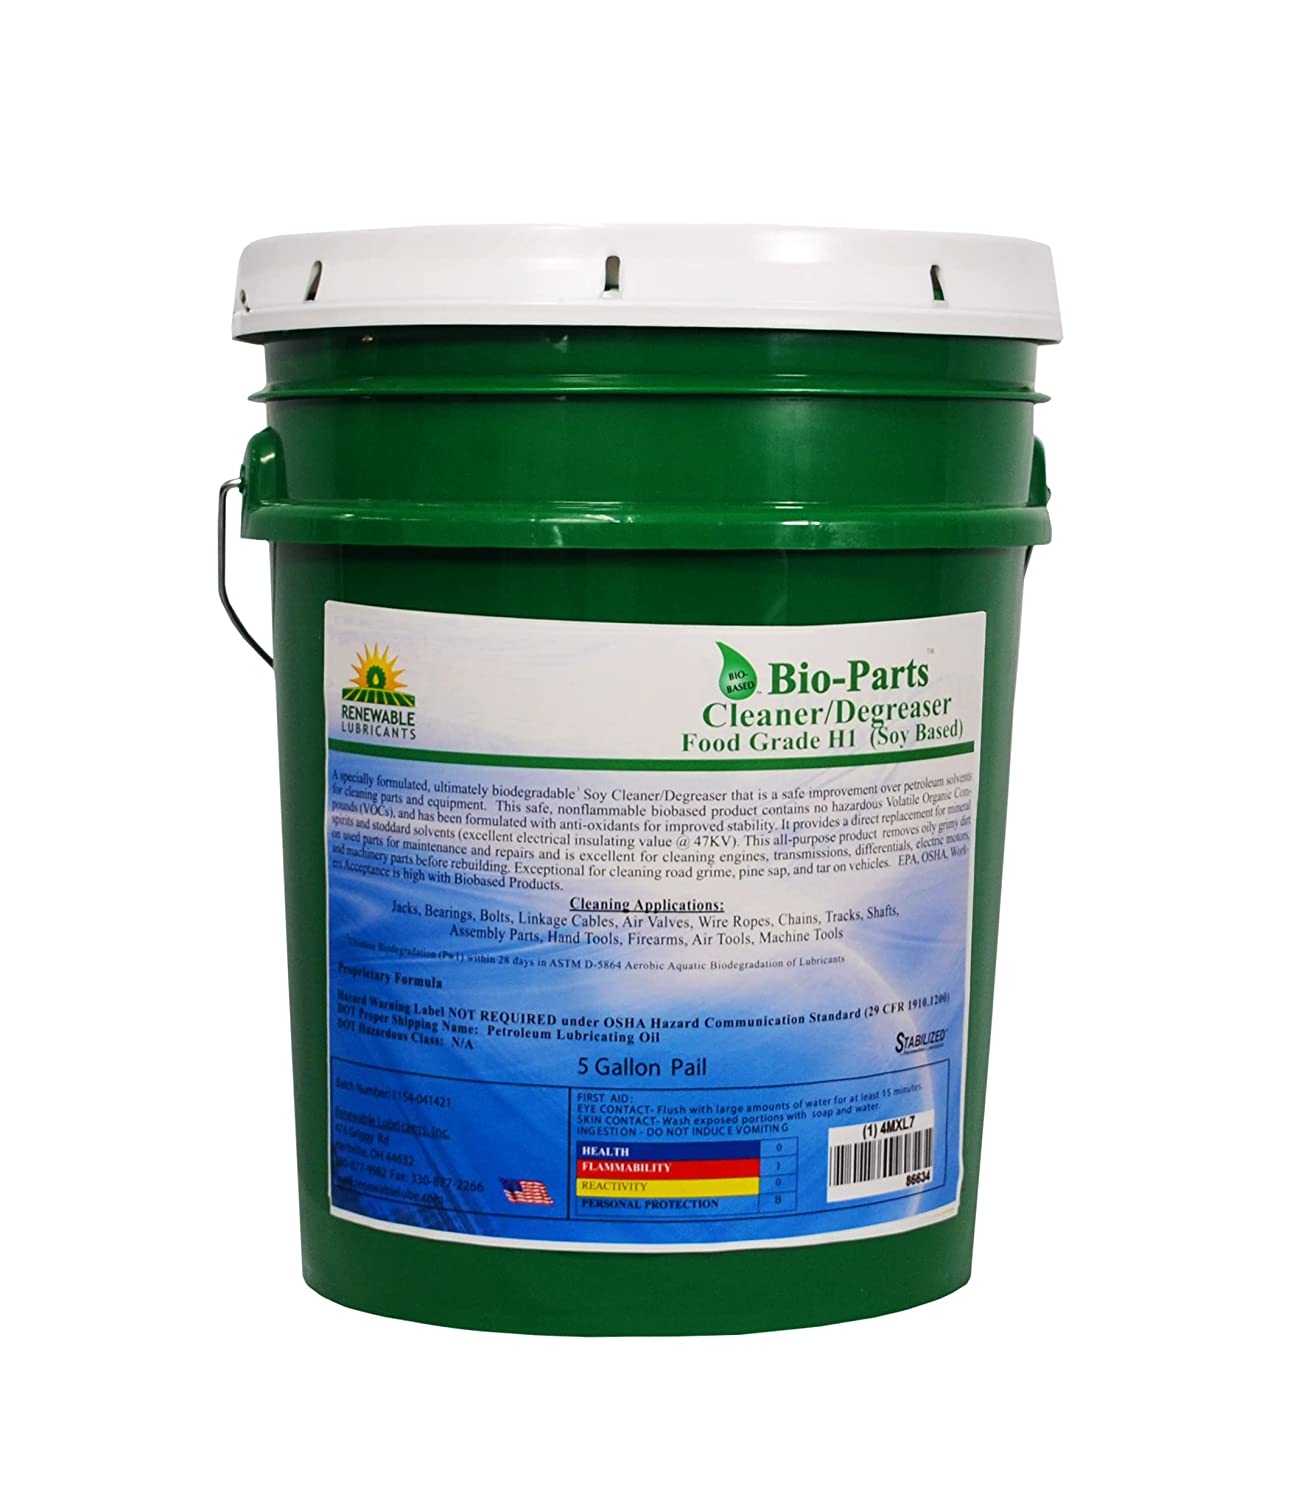 Renewable Lubricants Parts San Antonio Mall Cleaner price Degreaser 5 Yellow Pail gal